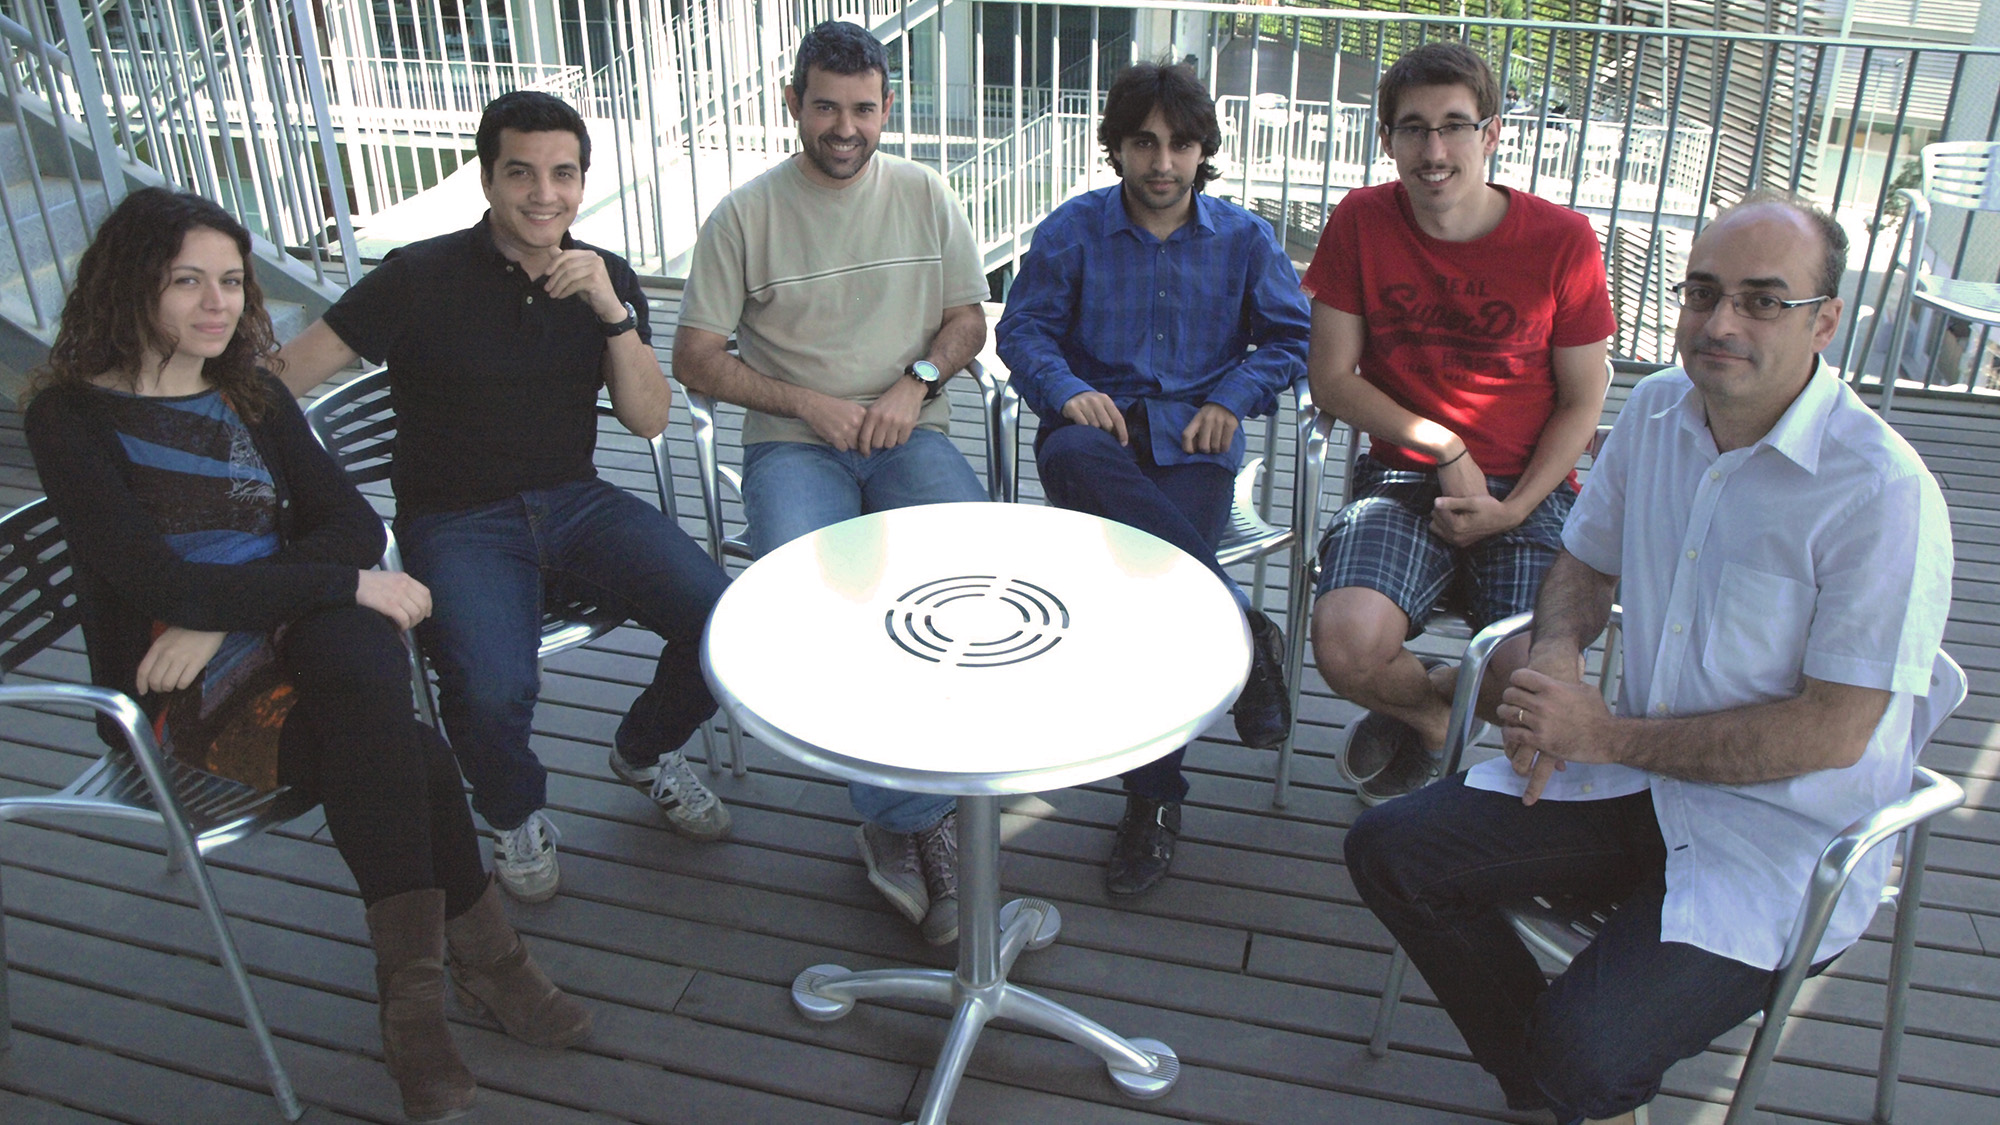 Two PhD students, two masters students and one postdoc: the five members of the paleogenomics group led by Carles Lalueza-Fox at the IBE (CSIC-UPF).